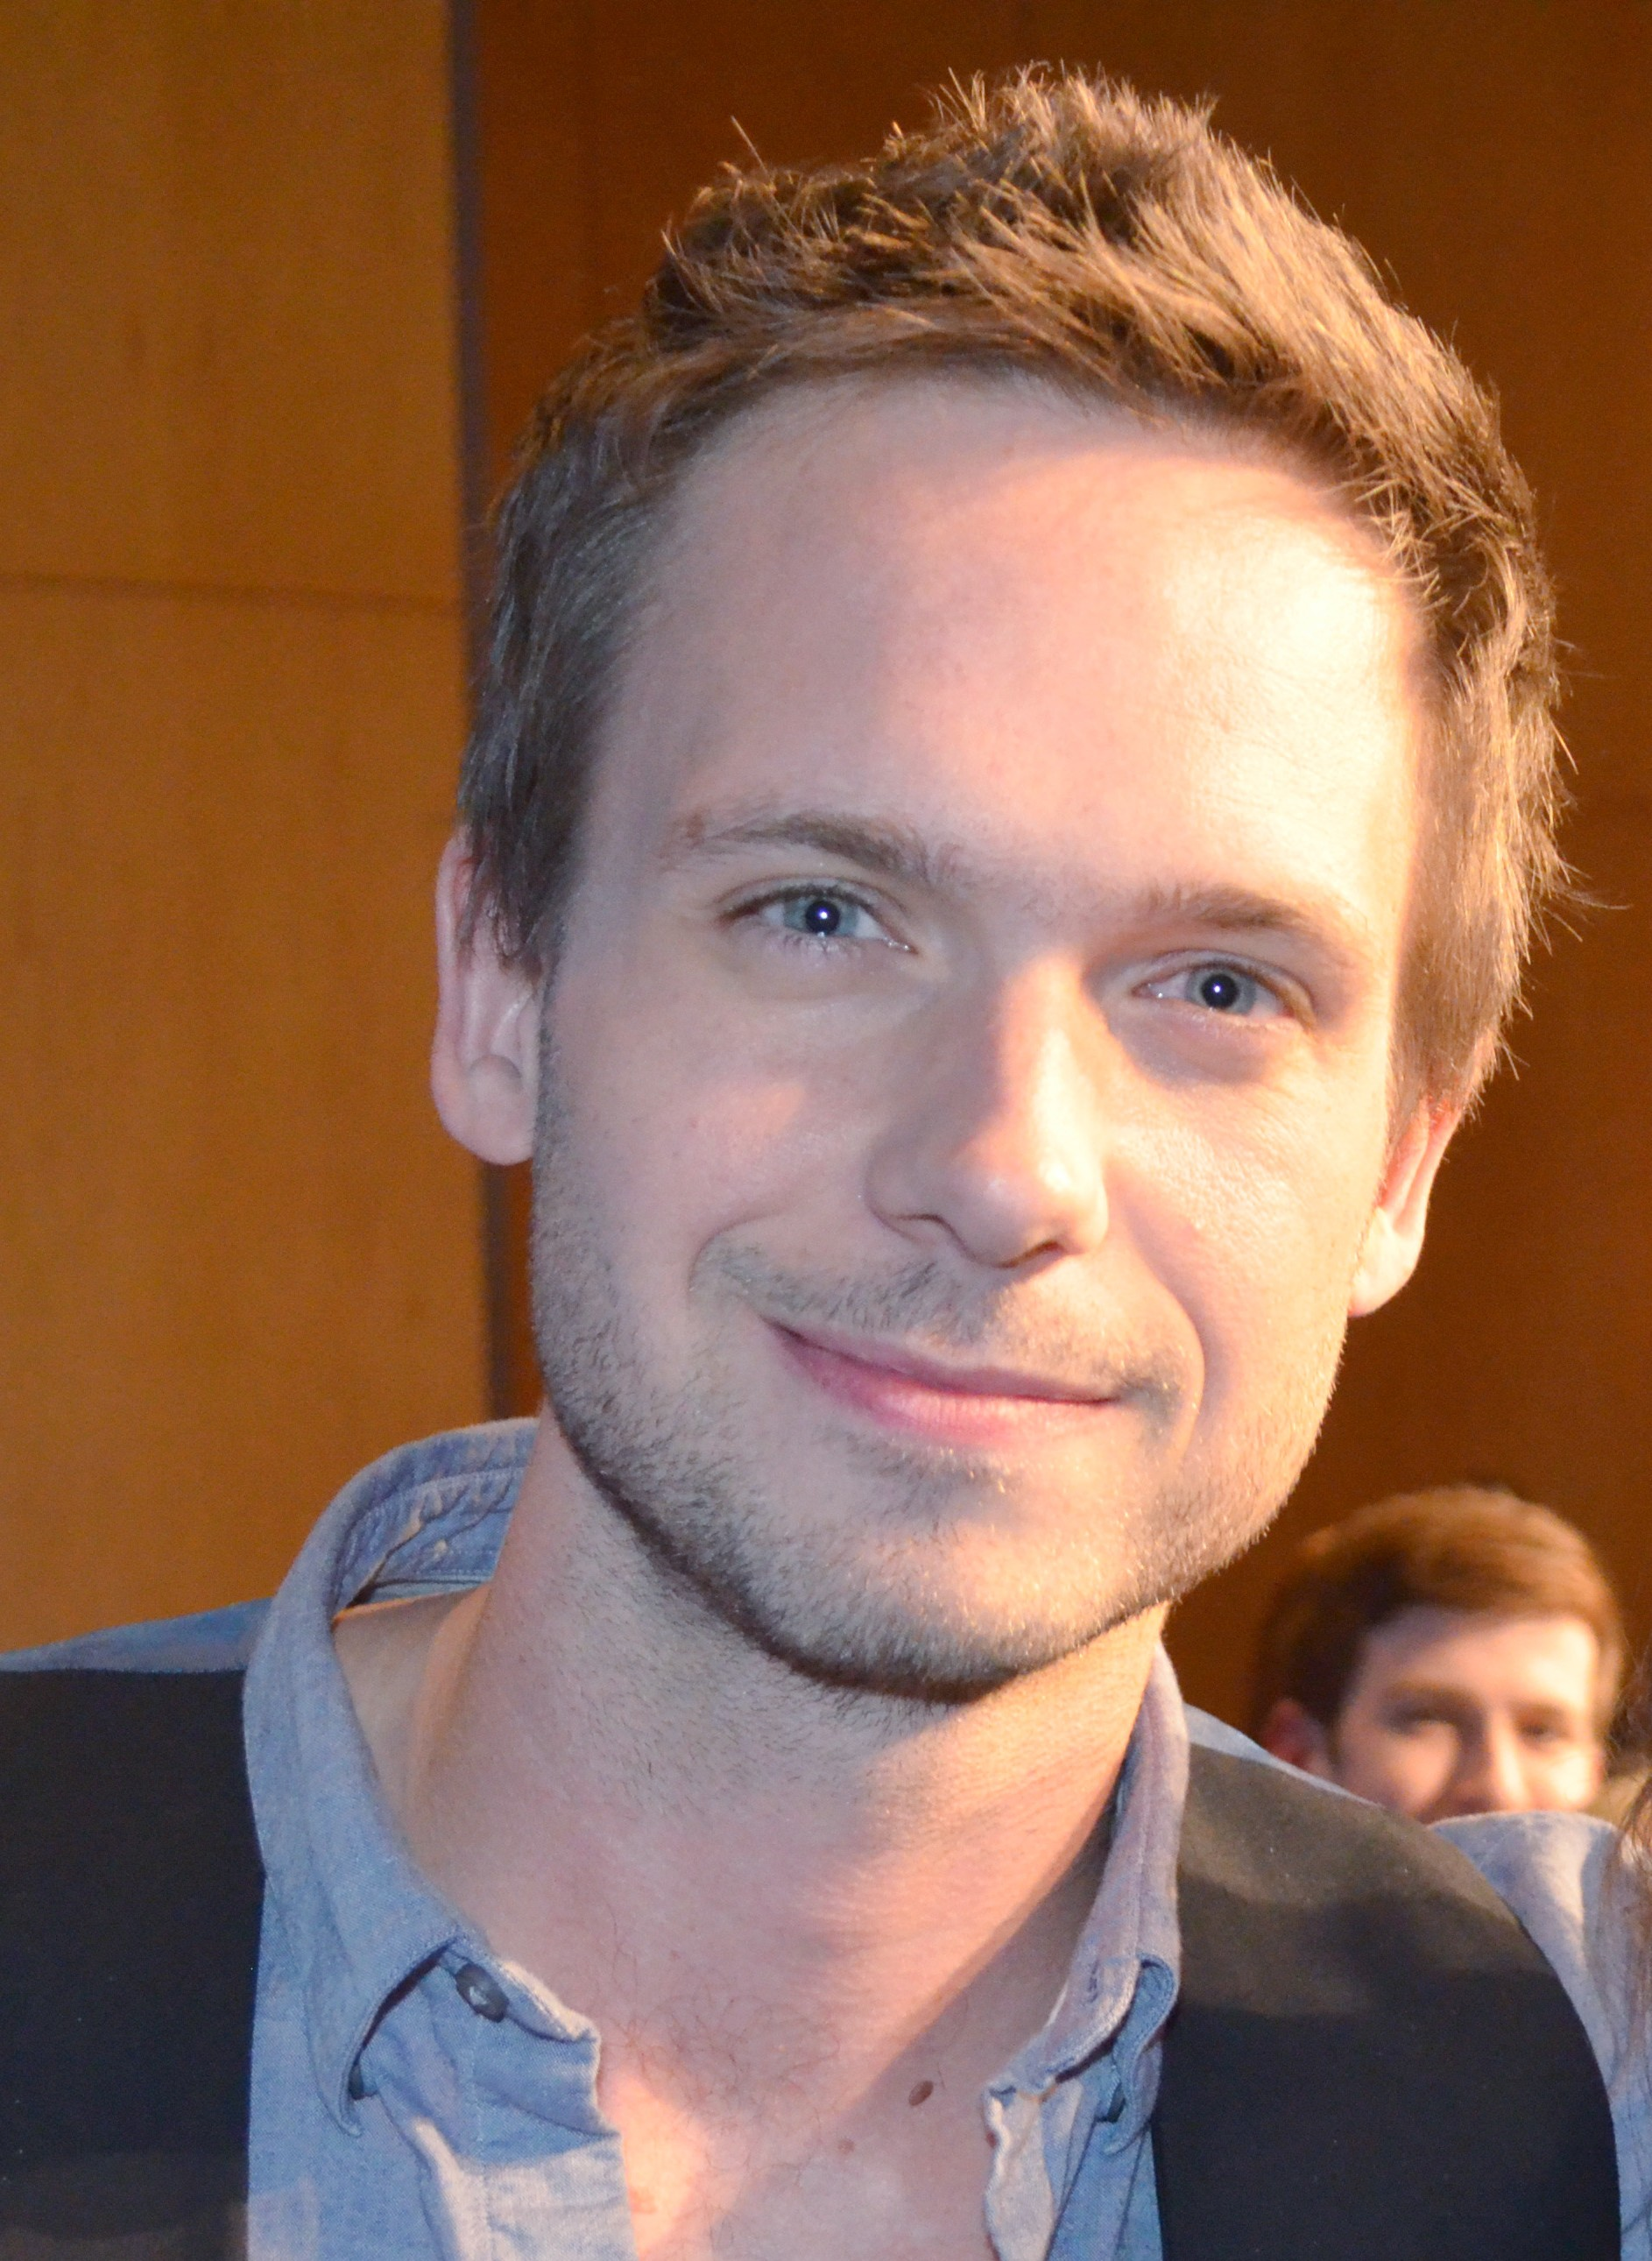 The 37-year old son of father (?) and mother(?) Patrick J. Adams in 2018 photo. Patrick J. Adams earned a unknown million dollar salary - leaving the net worth at 10 million in 2018